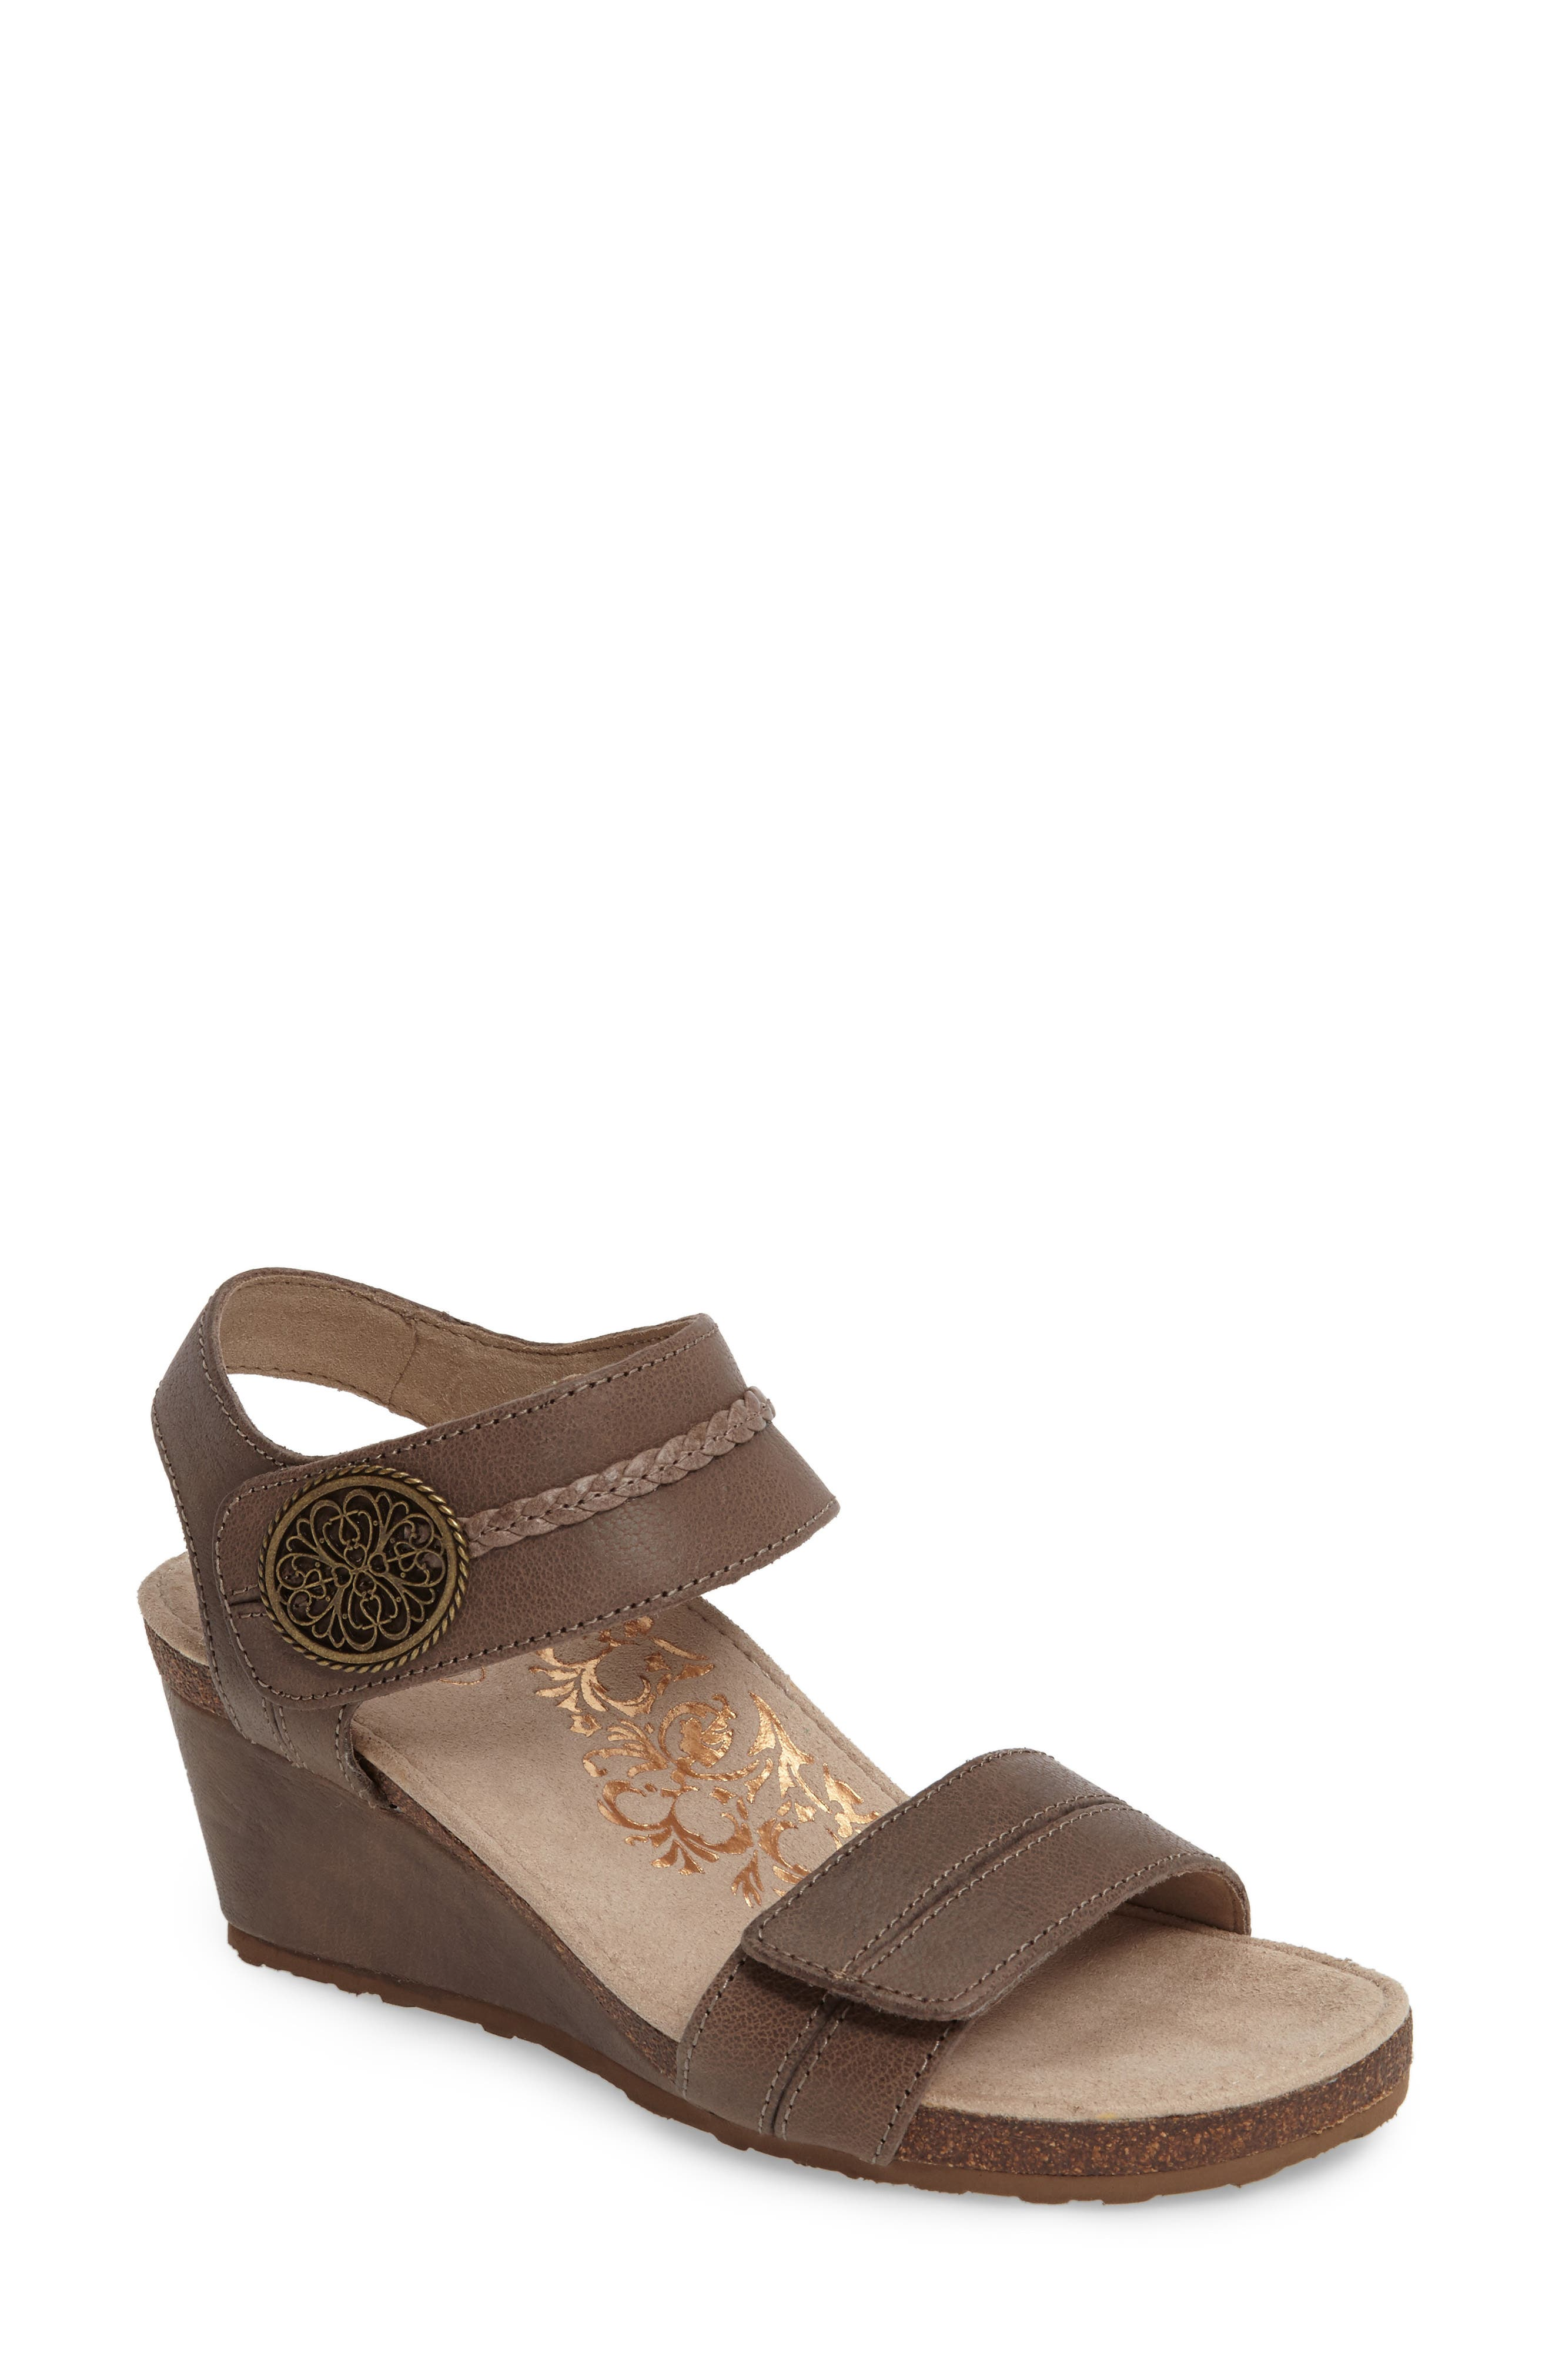 'Arielle' Leather Wedge Sandal,                         Main,                         color, Stone Leather